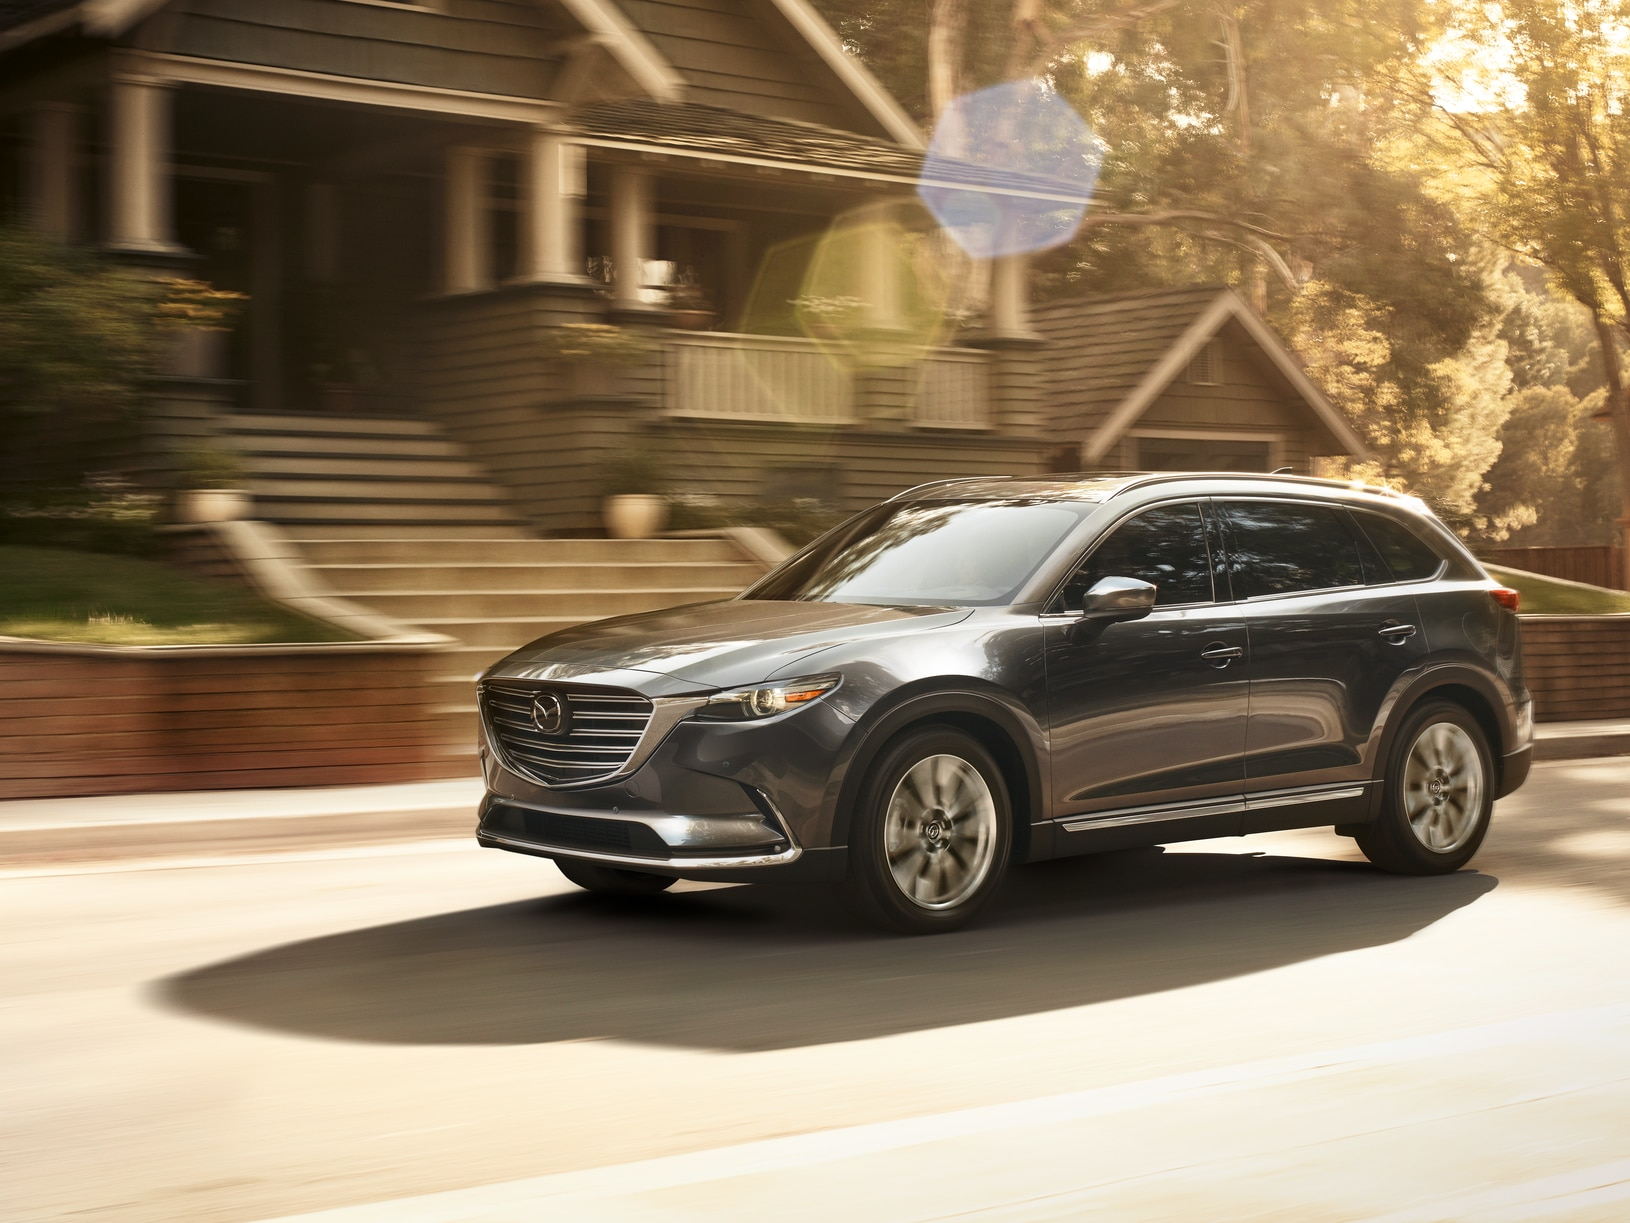 2019 Mazda CX 9 Bergen County NJ